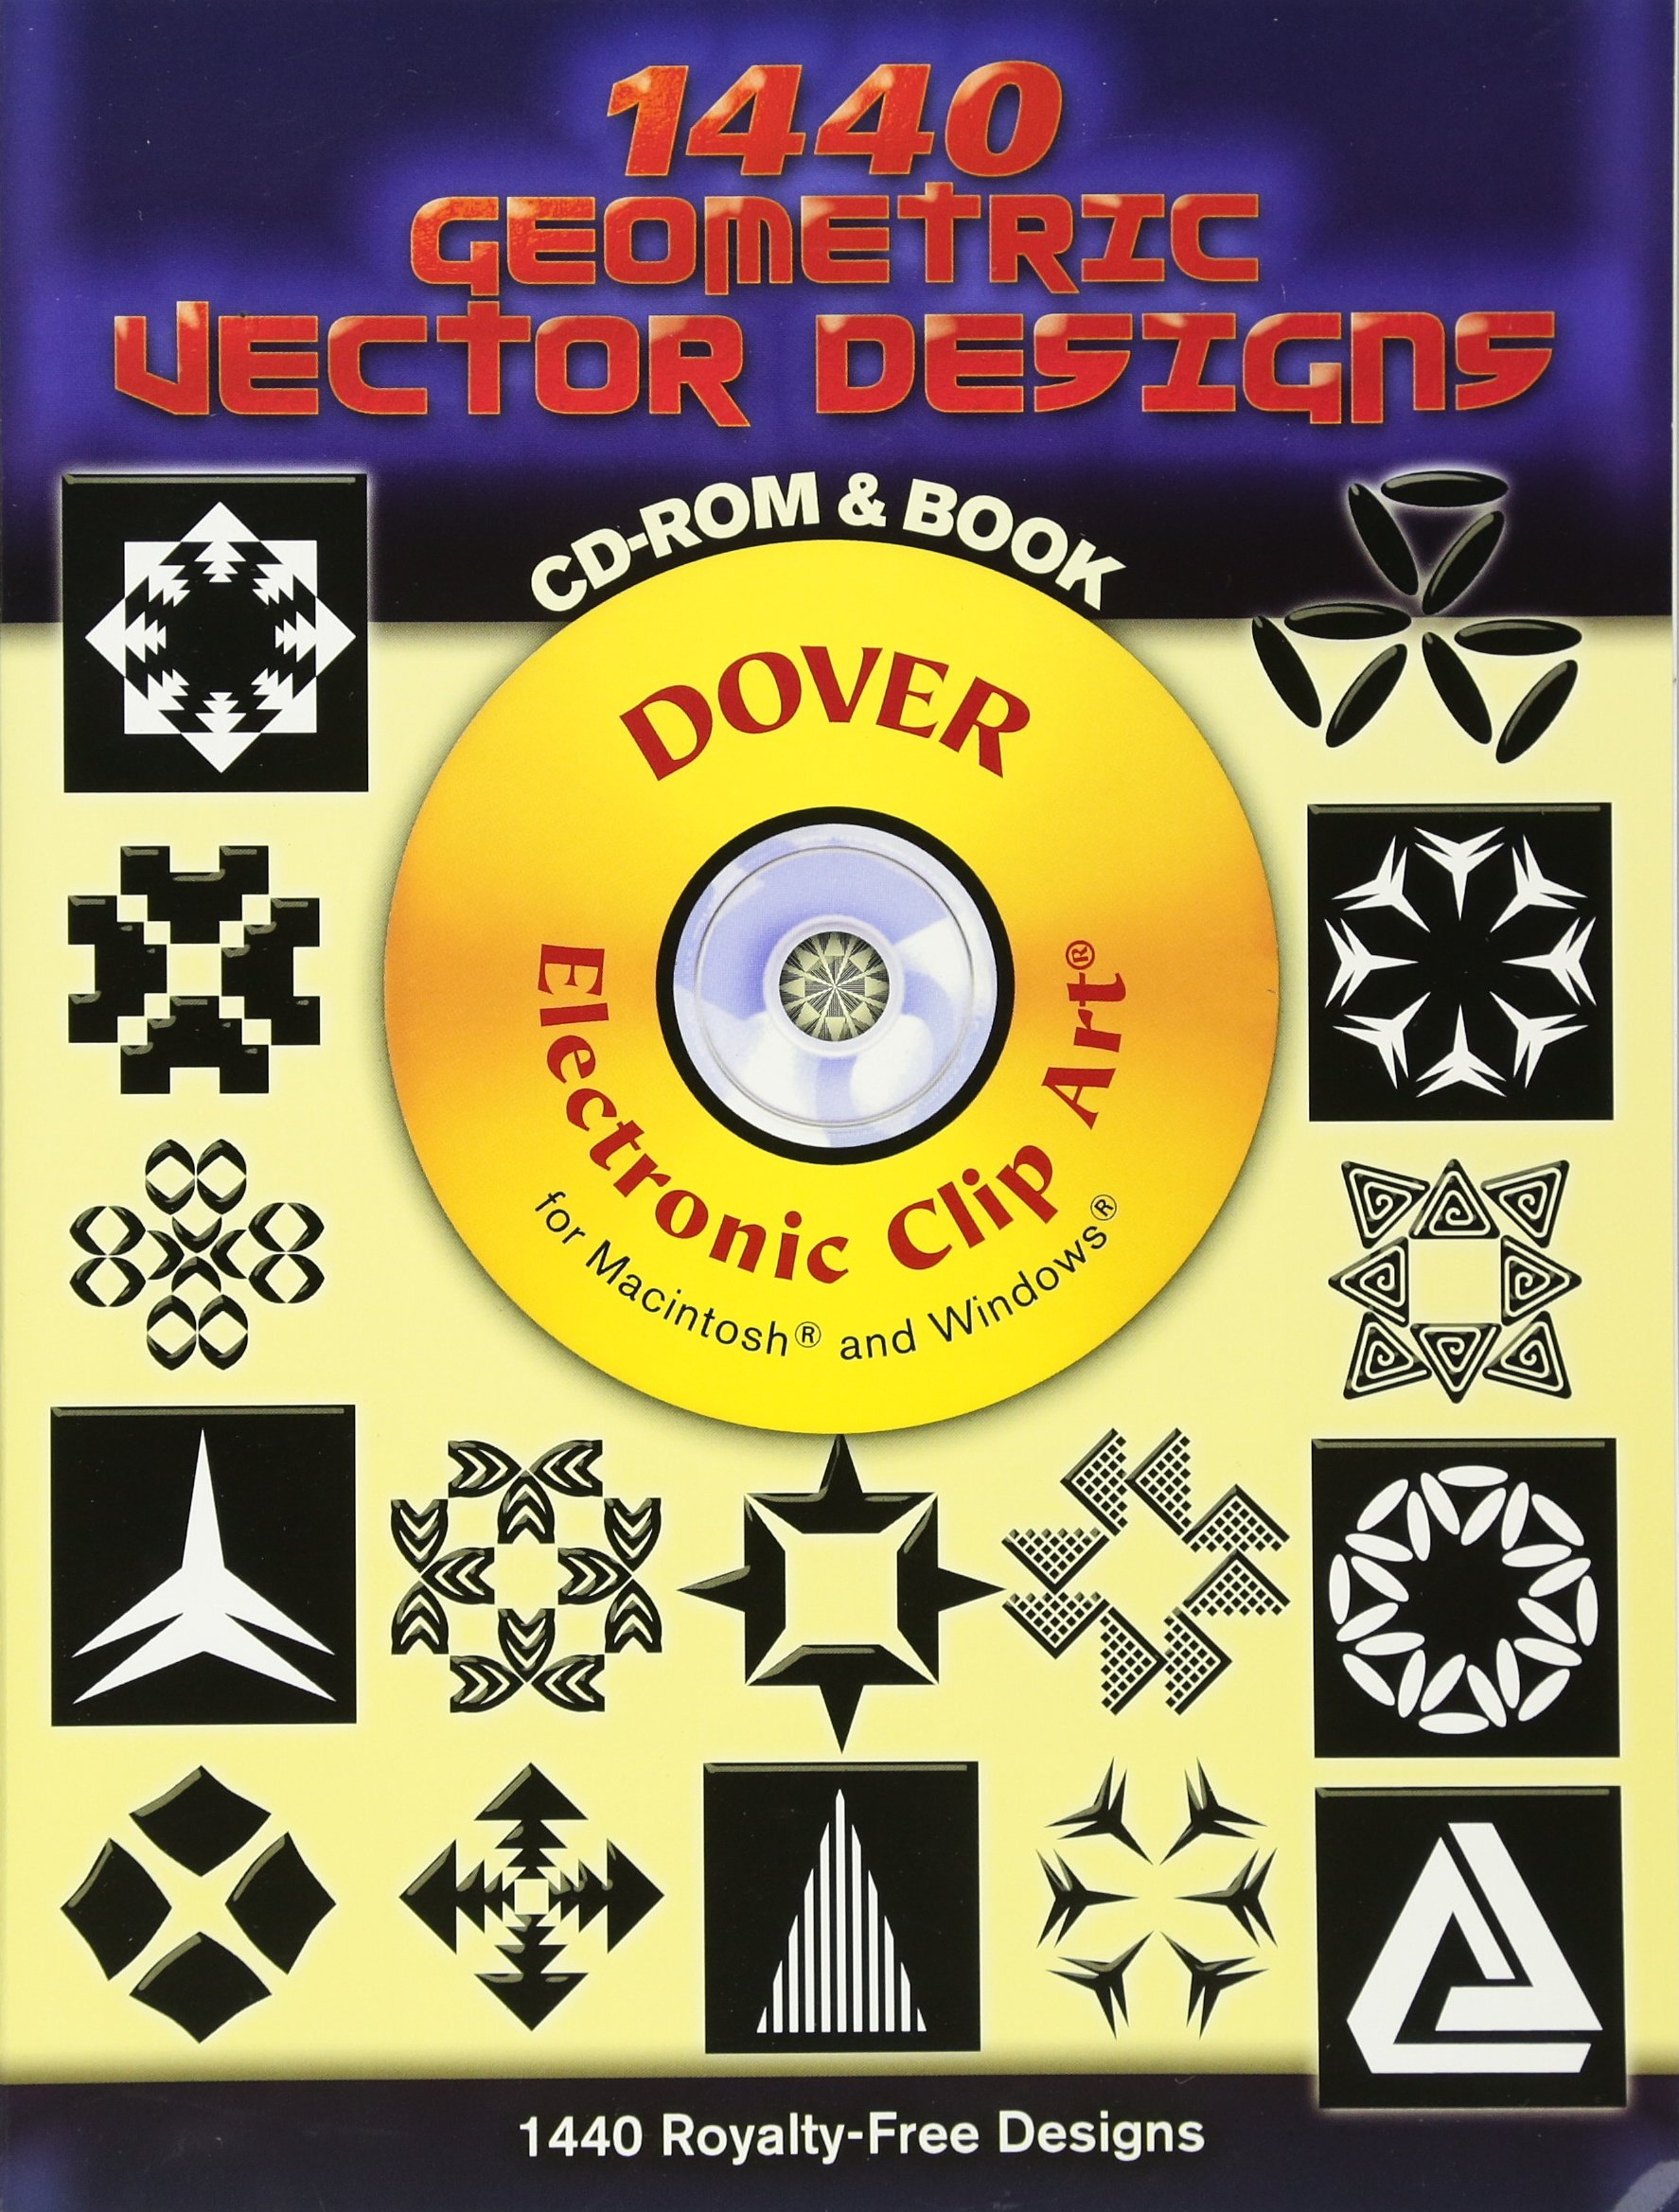 1440 Geometric Vector Designs CD-ROM and Book (Dover Electronic Clip Art) pdf epub